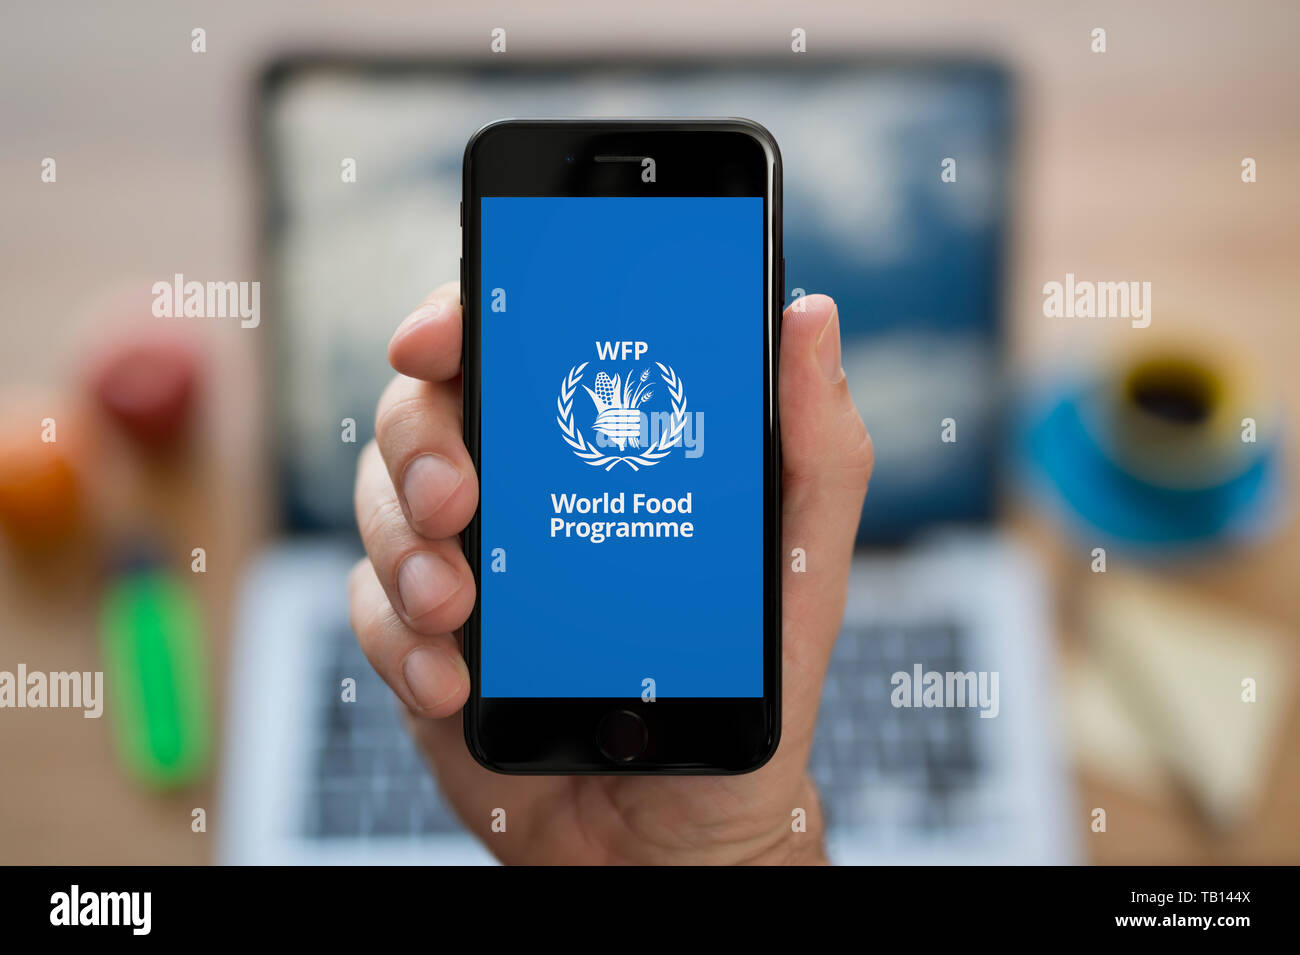 A man looks at his iPhone which displays the World Food Programme logo (Editorial use only). Stock Photo